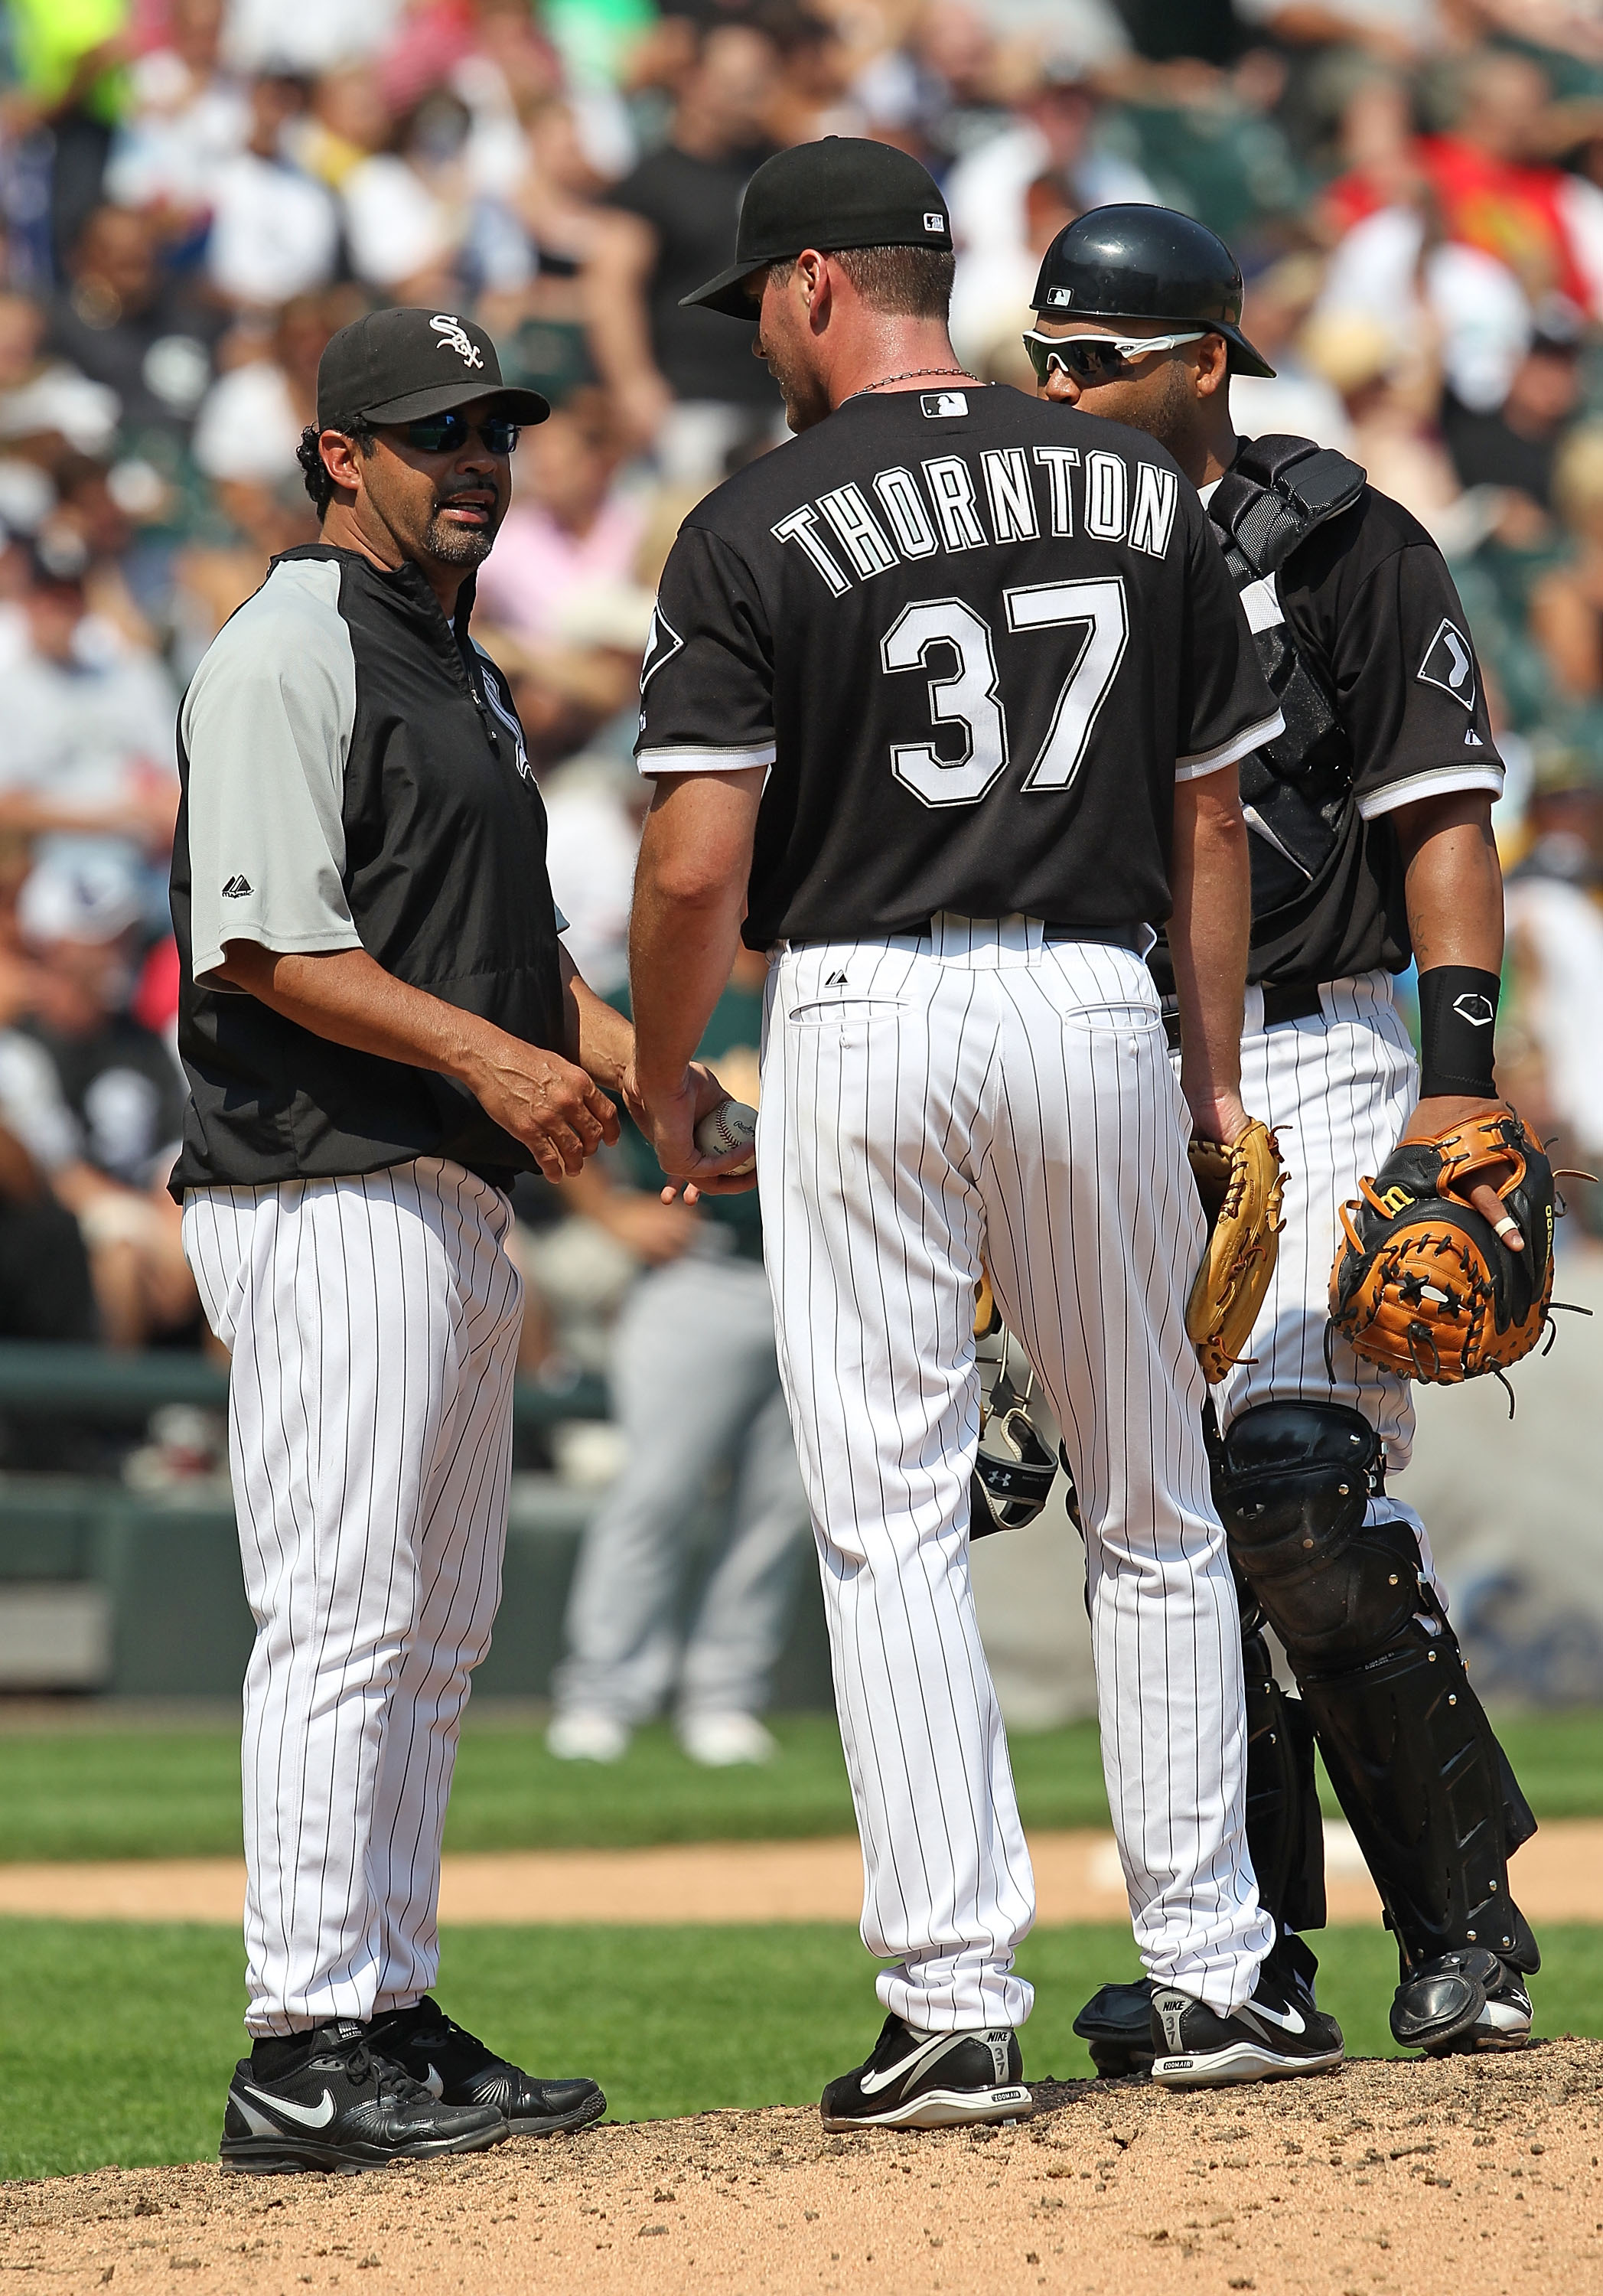 CHICAGO - AUGUST 01: Manager Ozzie Guillen #13 of the Chicago White Sox talks with Matt Thorton #37 and Ramon Castro #27 in the 8th inning against the Oakland Athletics at U.S. Cellular Field on August 1, 2010 in Chicago, Illinois. The White Sox defeated